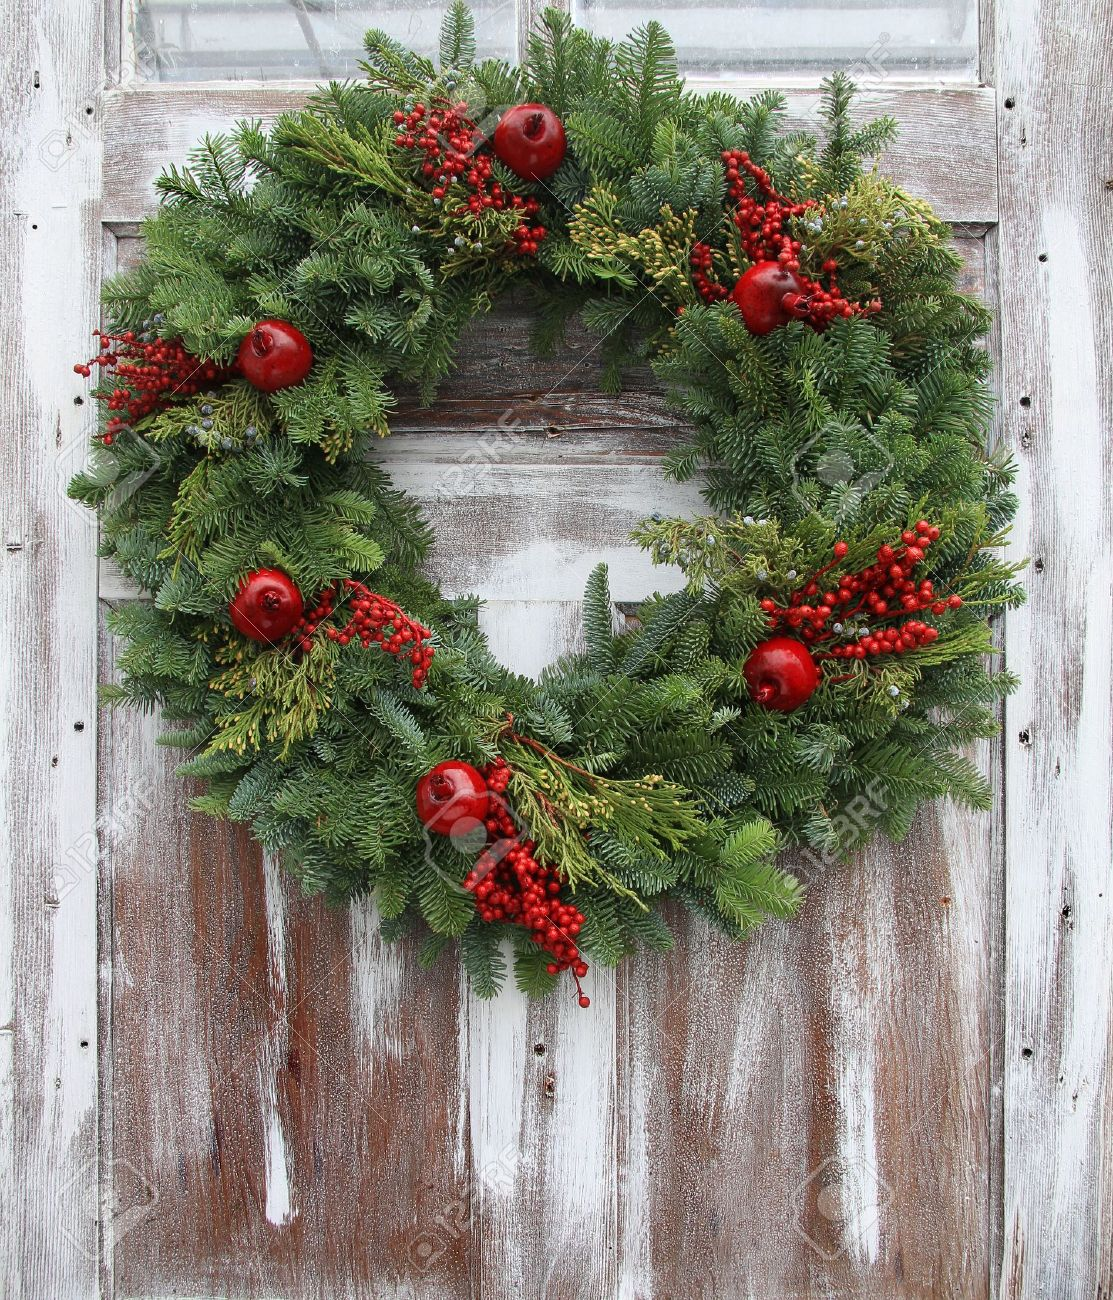 Front door christmas wreaths - Christmas Wreath On A Rustic Wooden Front Door Stock Photo 16482389